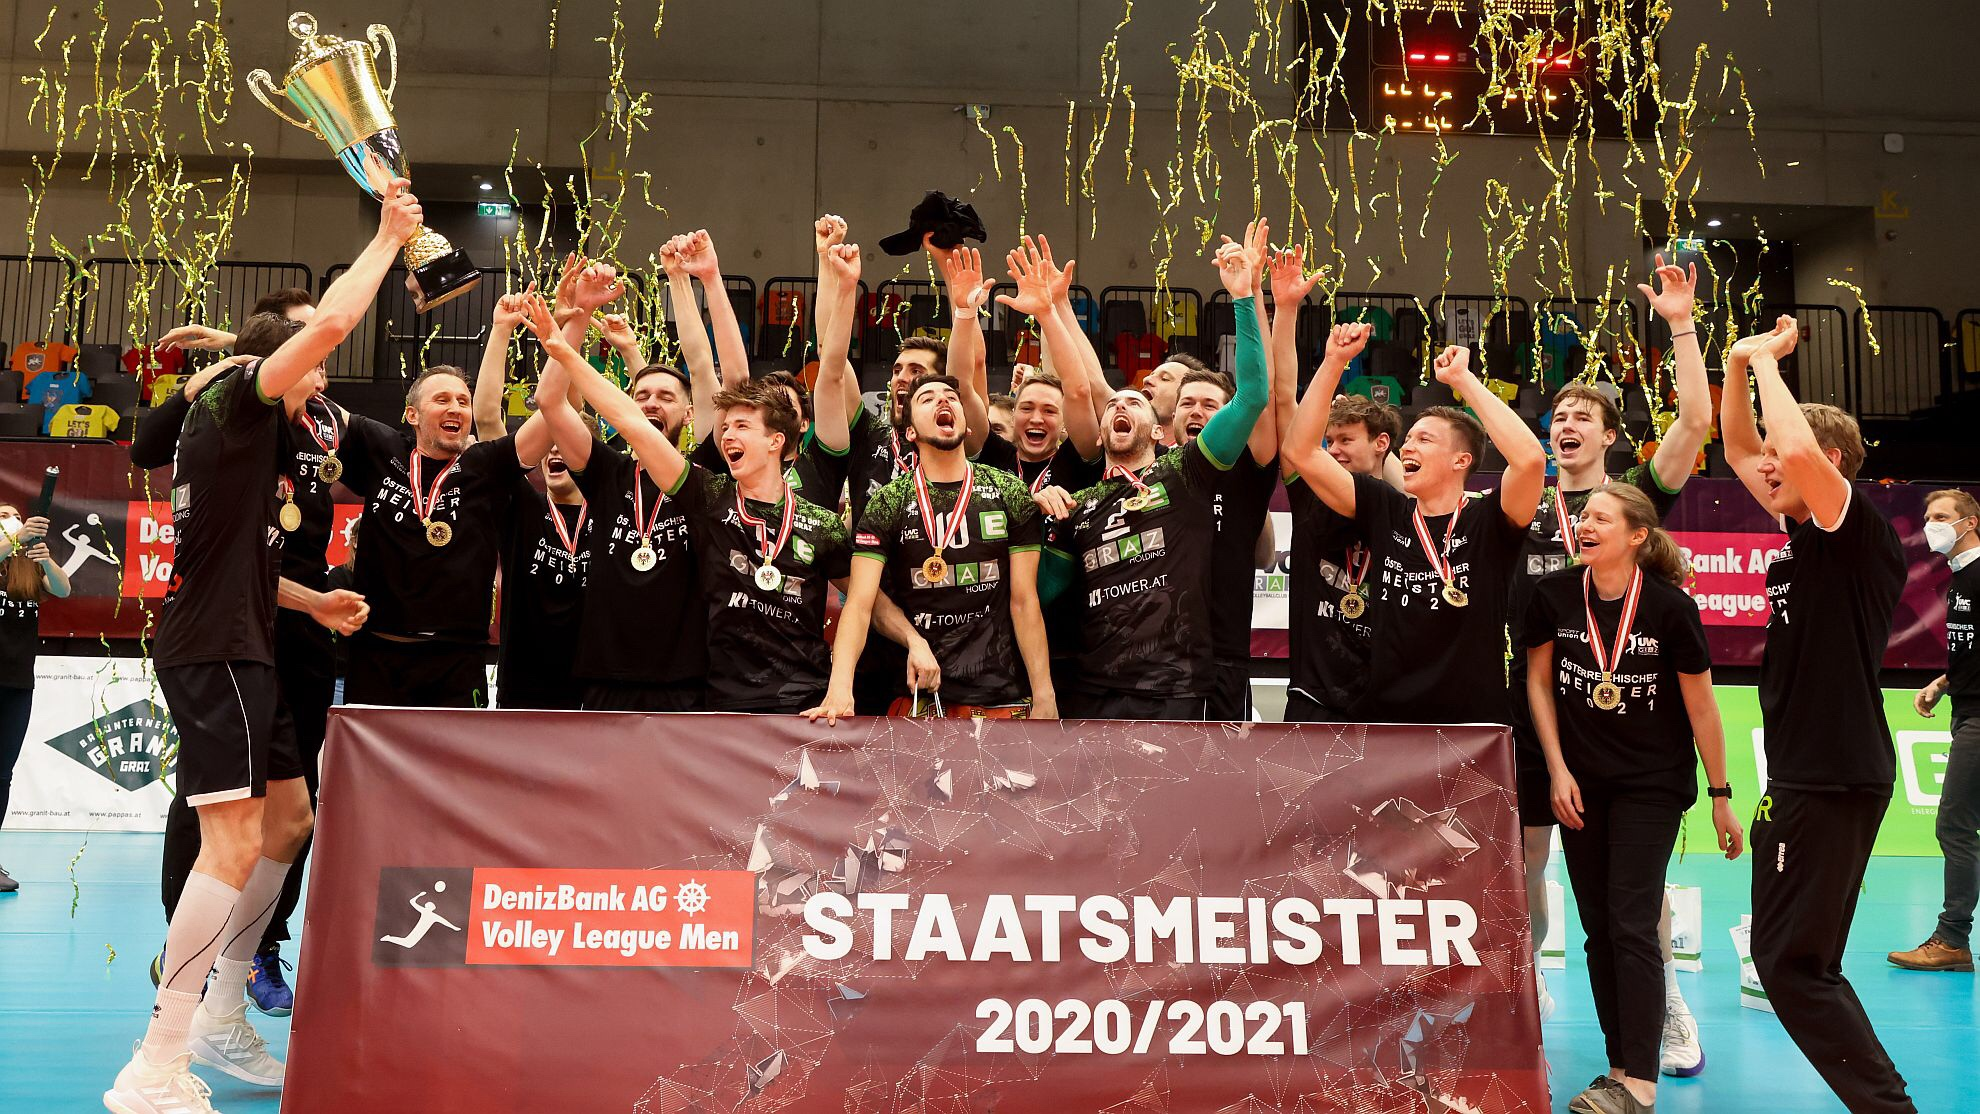 Austria: UVC Graz win historic title! Ried and Klagenfurt ok for 5th and 7th place